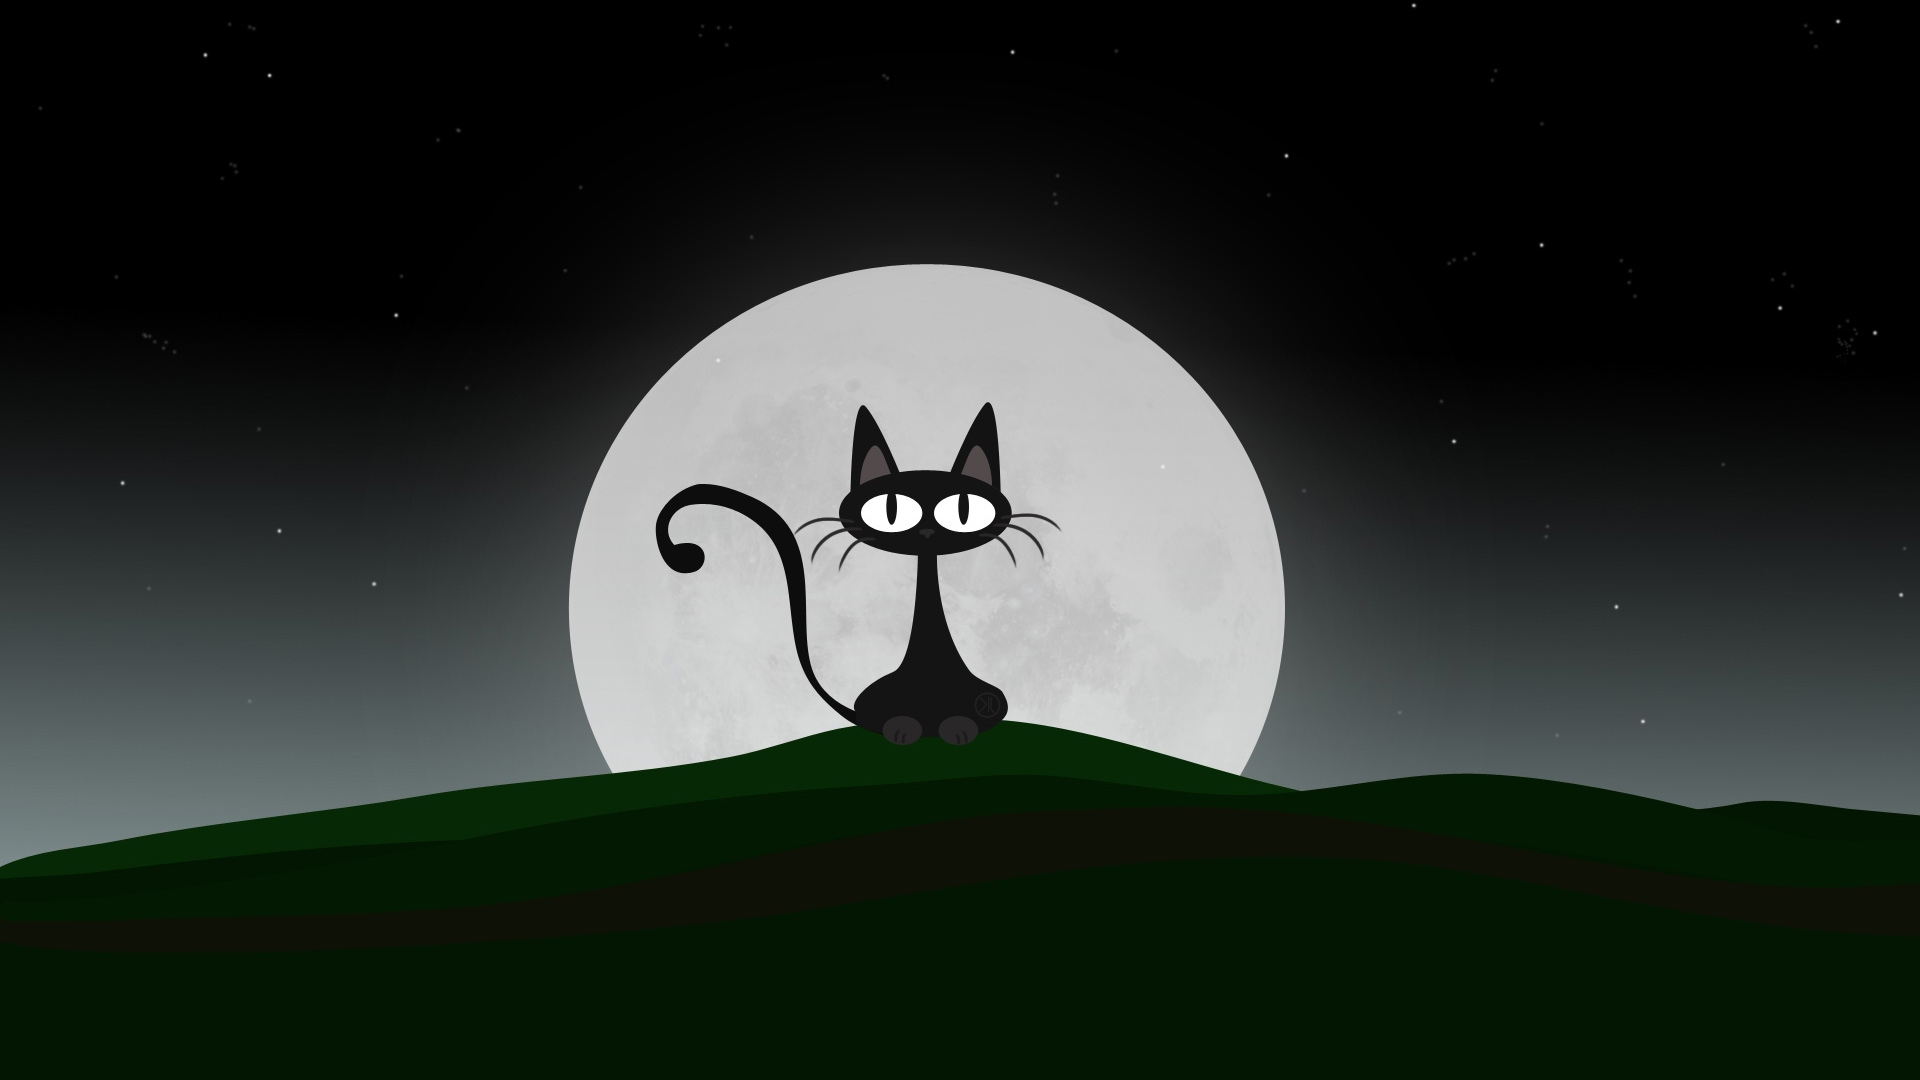 cat-in-the-night-hd-wallpaper